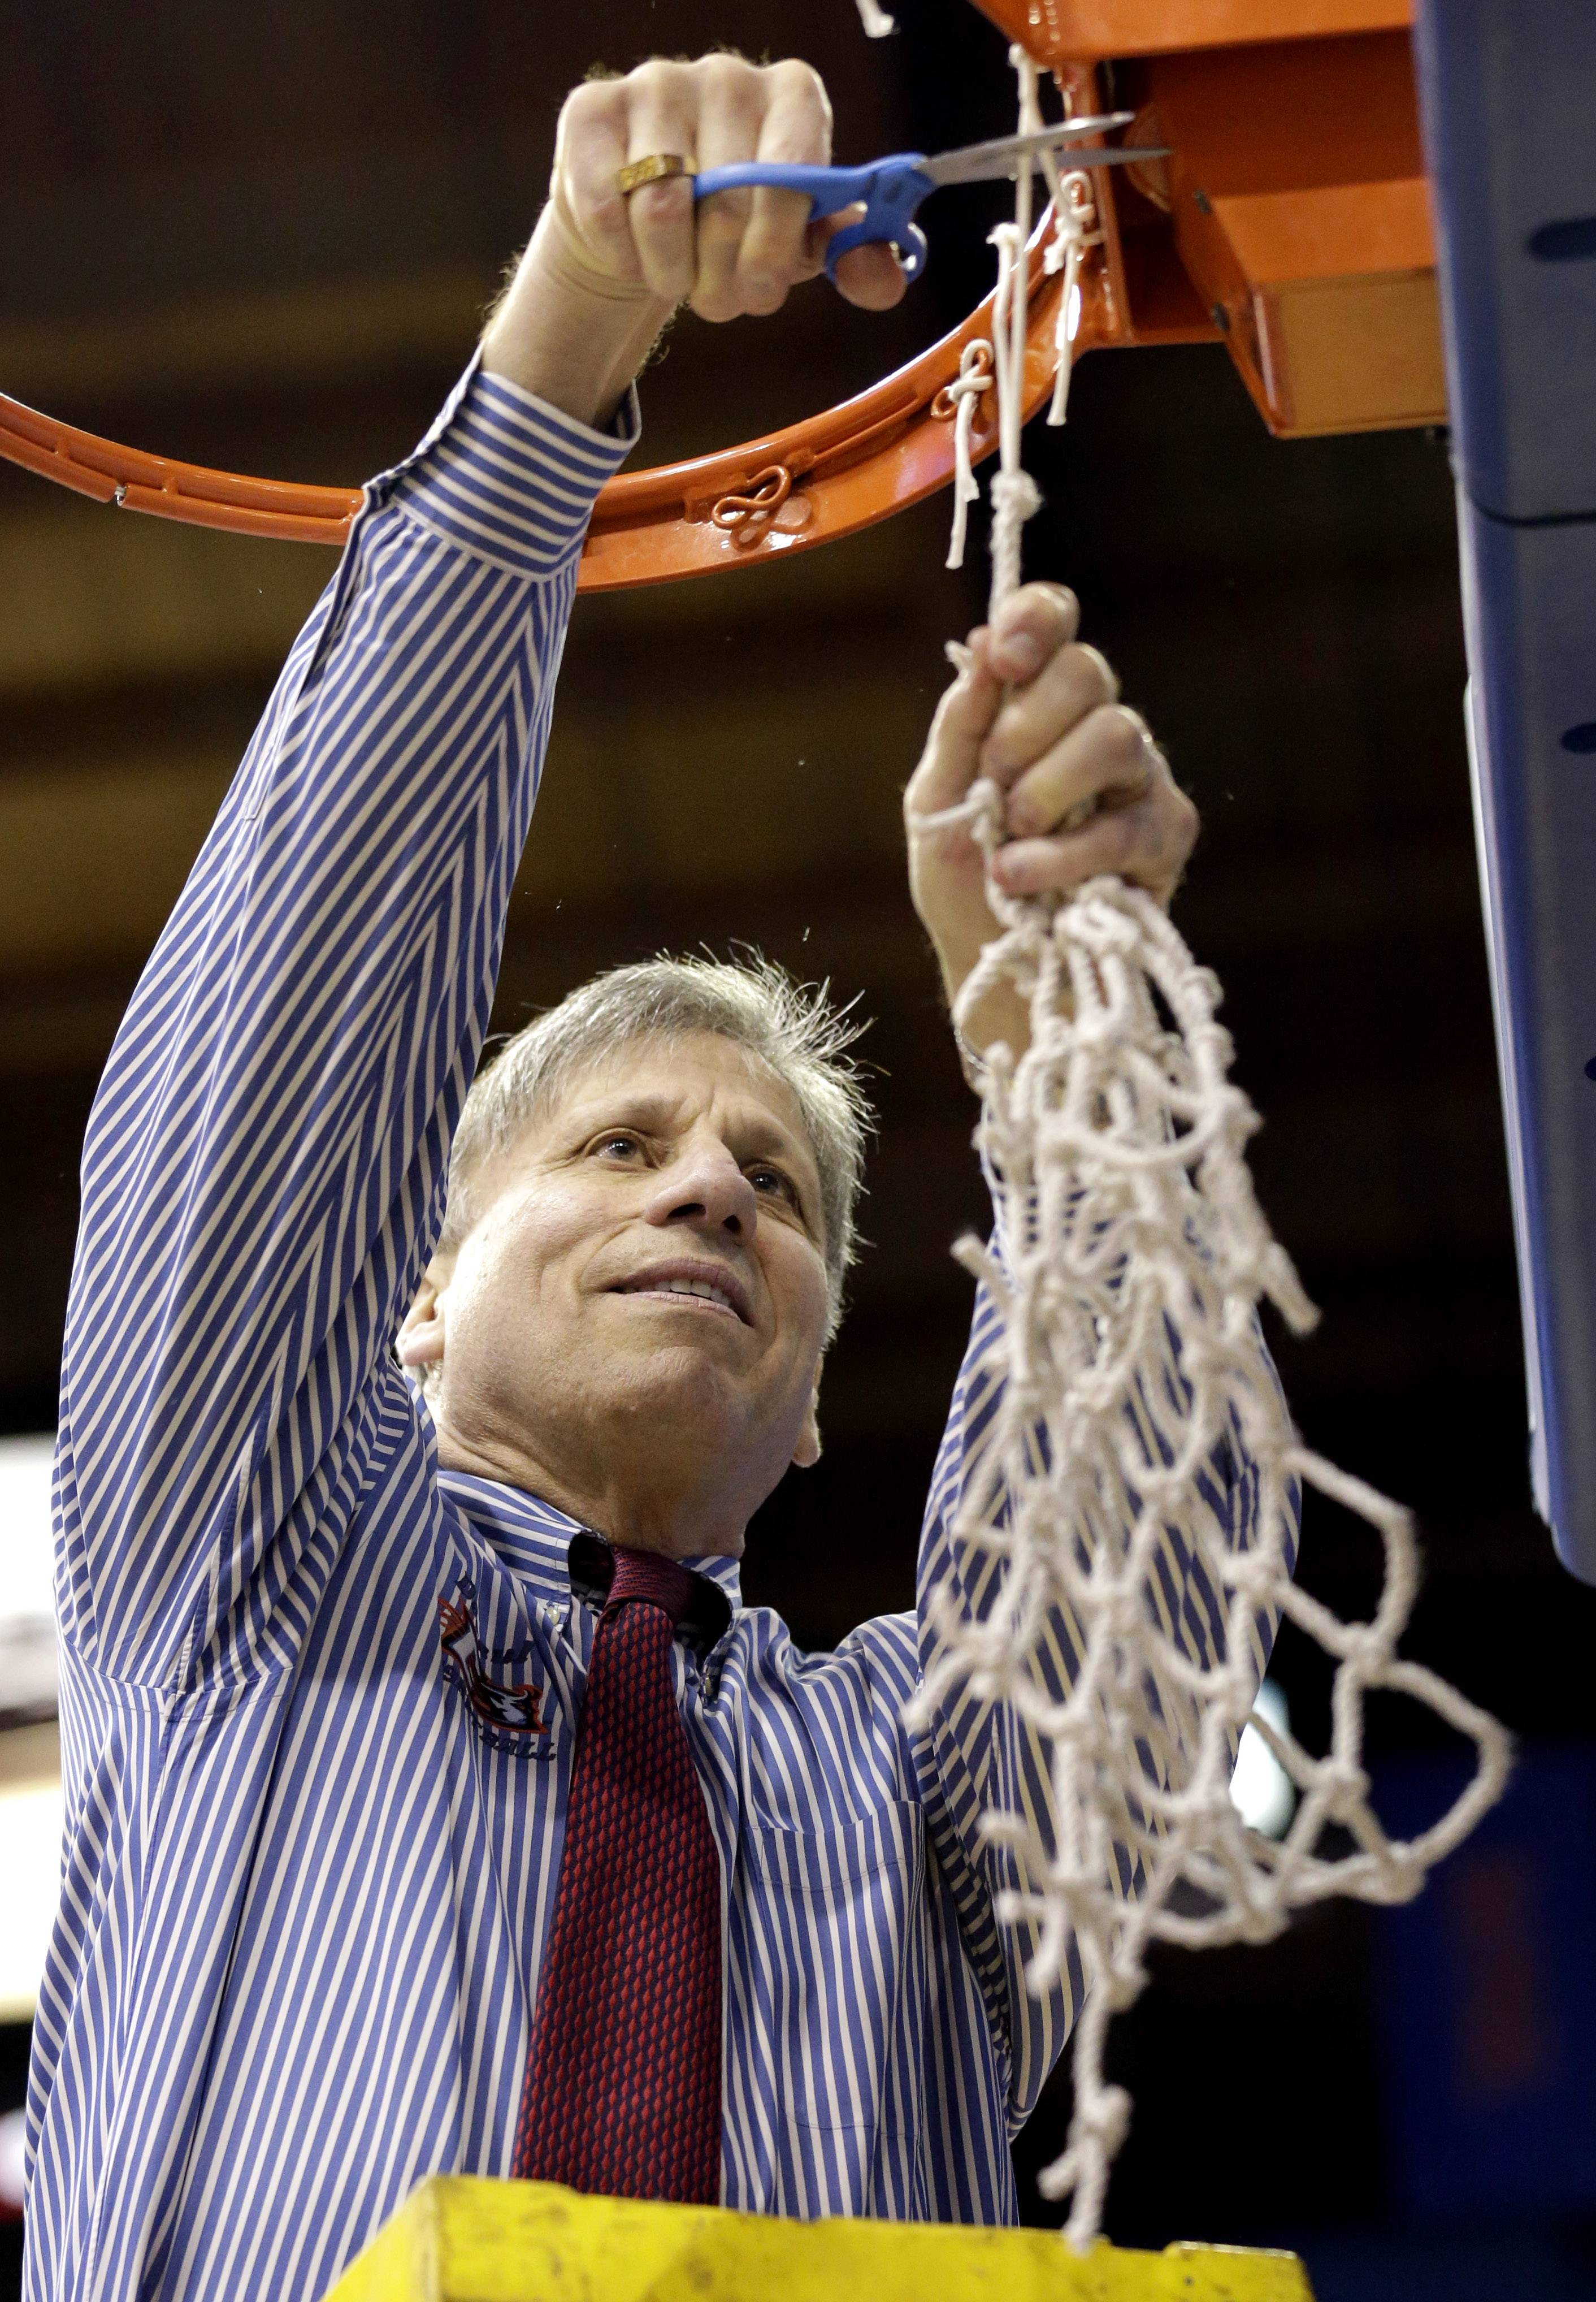 DePaul head coach Doug Bruno, shown here after  defeating St. John's for the Big East women's basketball tournament title, has been selected as an assistant coach for the 2014 USA Basketball Women's World Team.